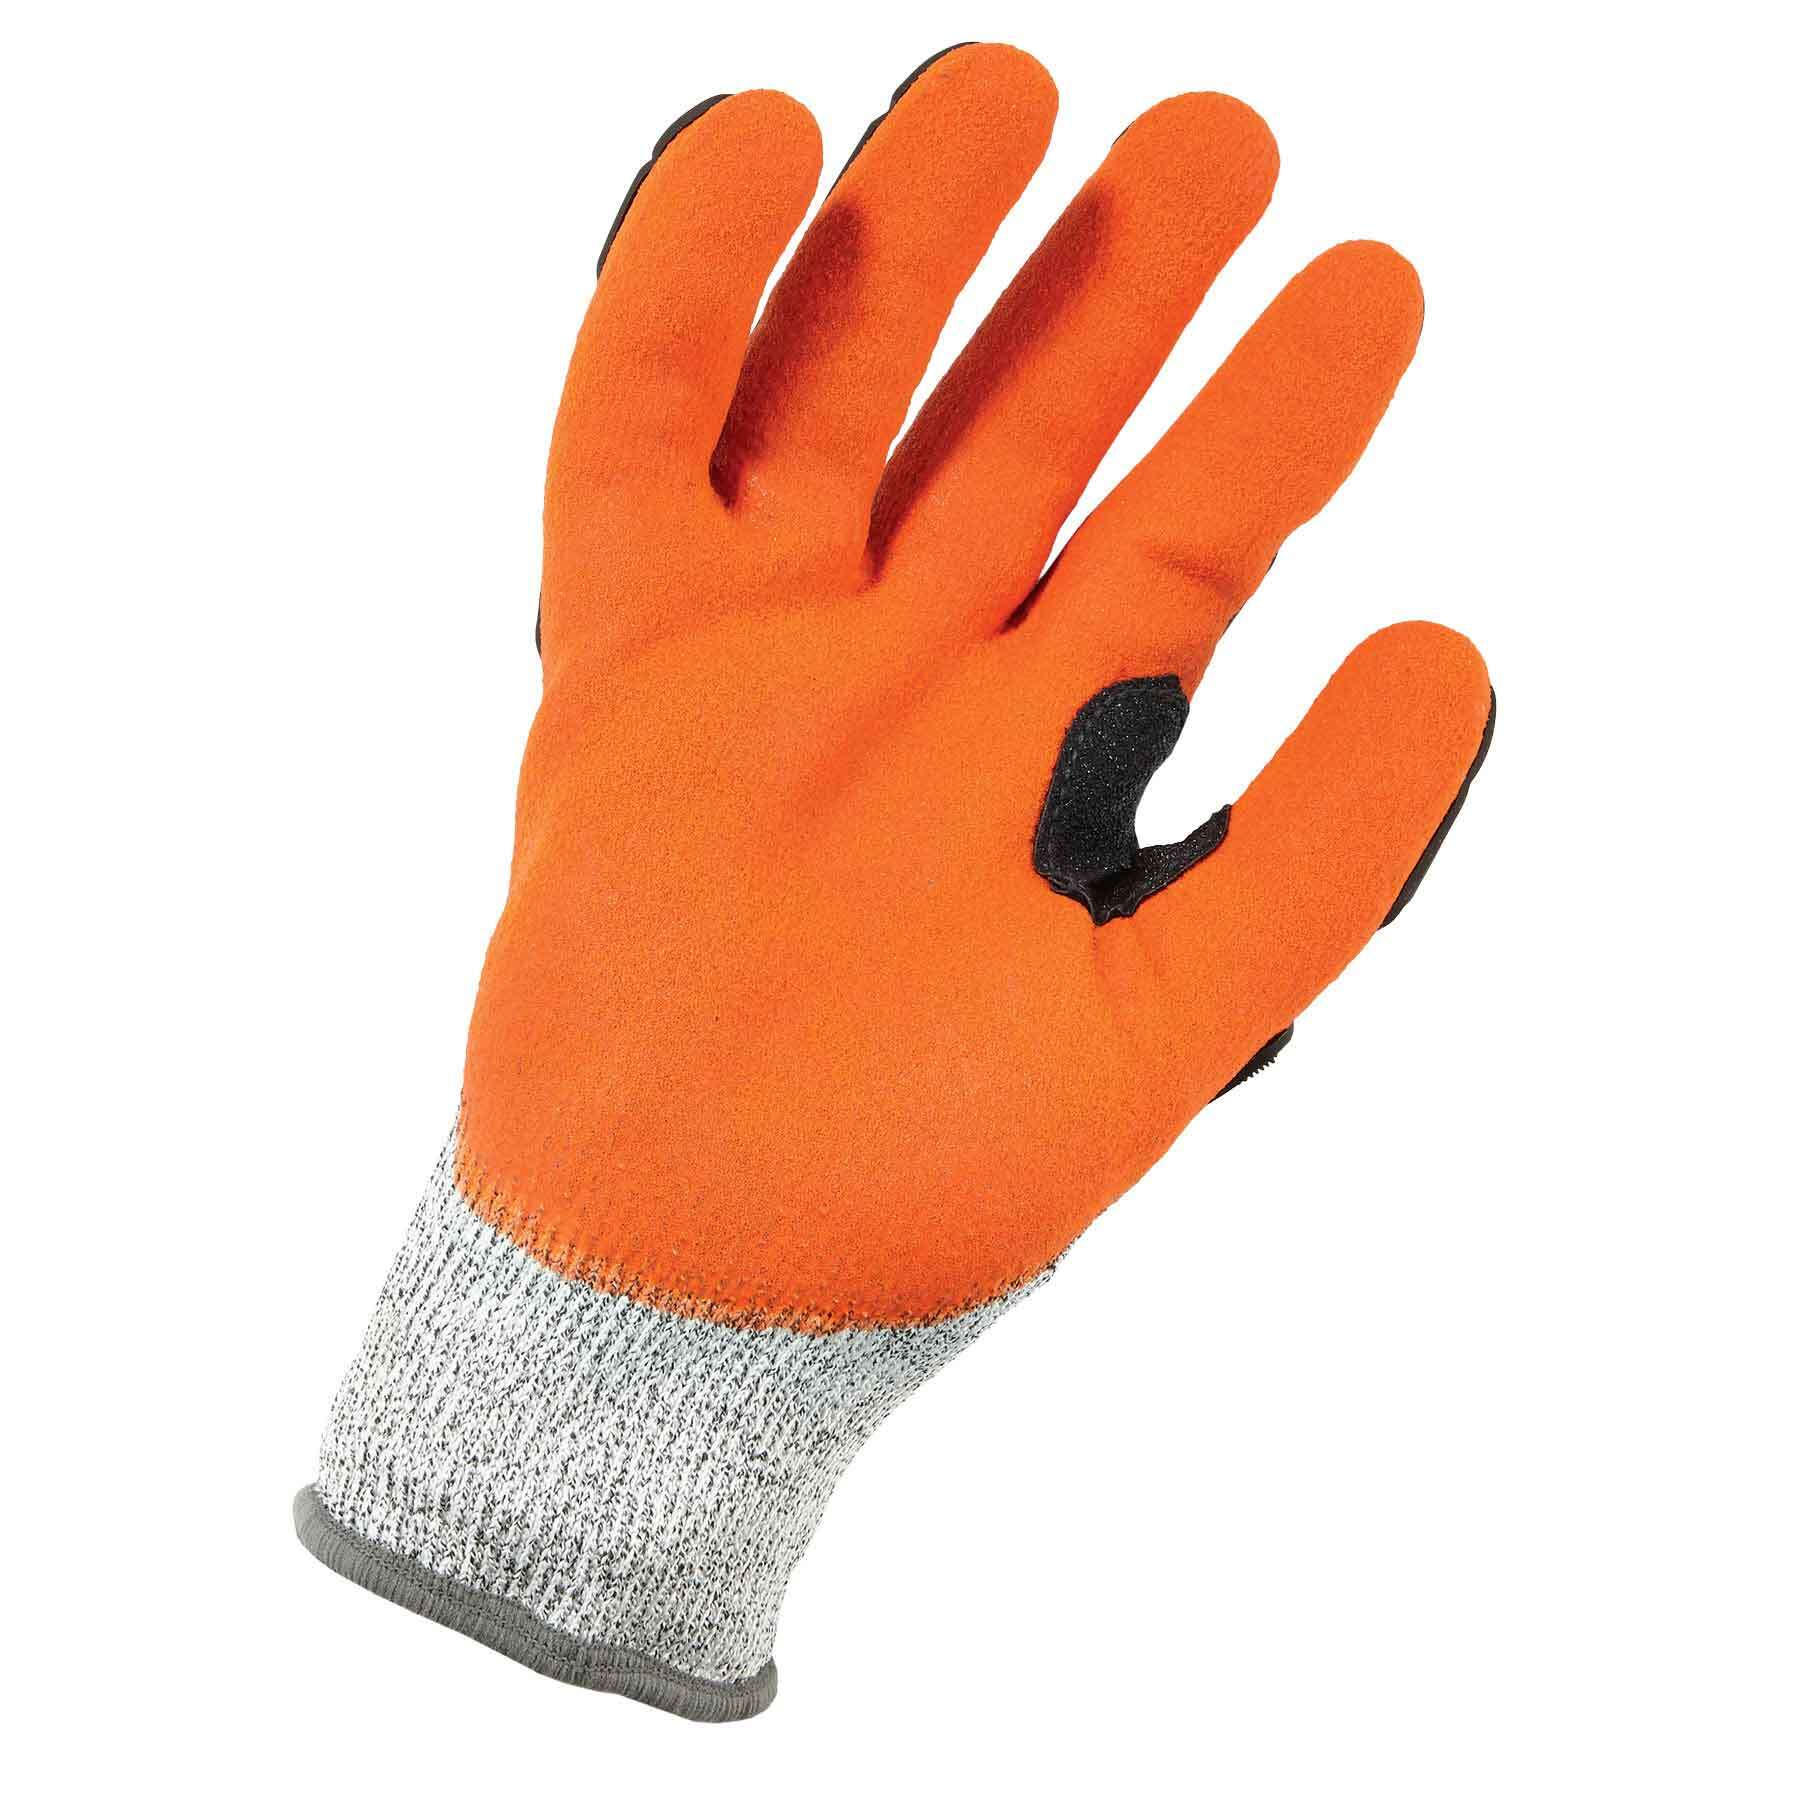 Back Hand Impact Protection Large Cut Resistant Cut Level A3 Ergodyne ProFlex 922CR Nitrile Dipped Work Gloves